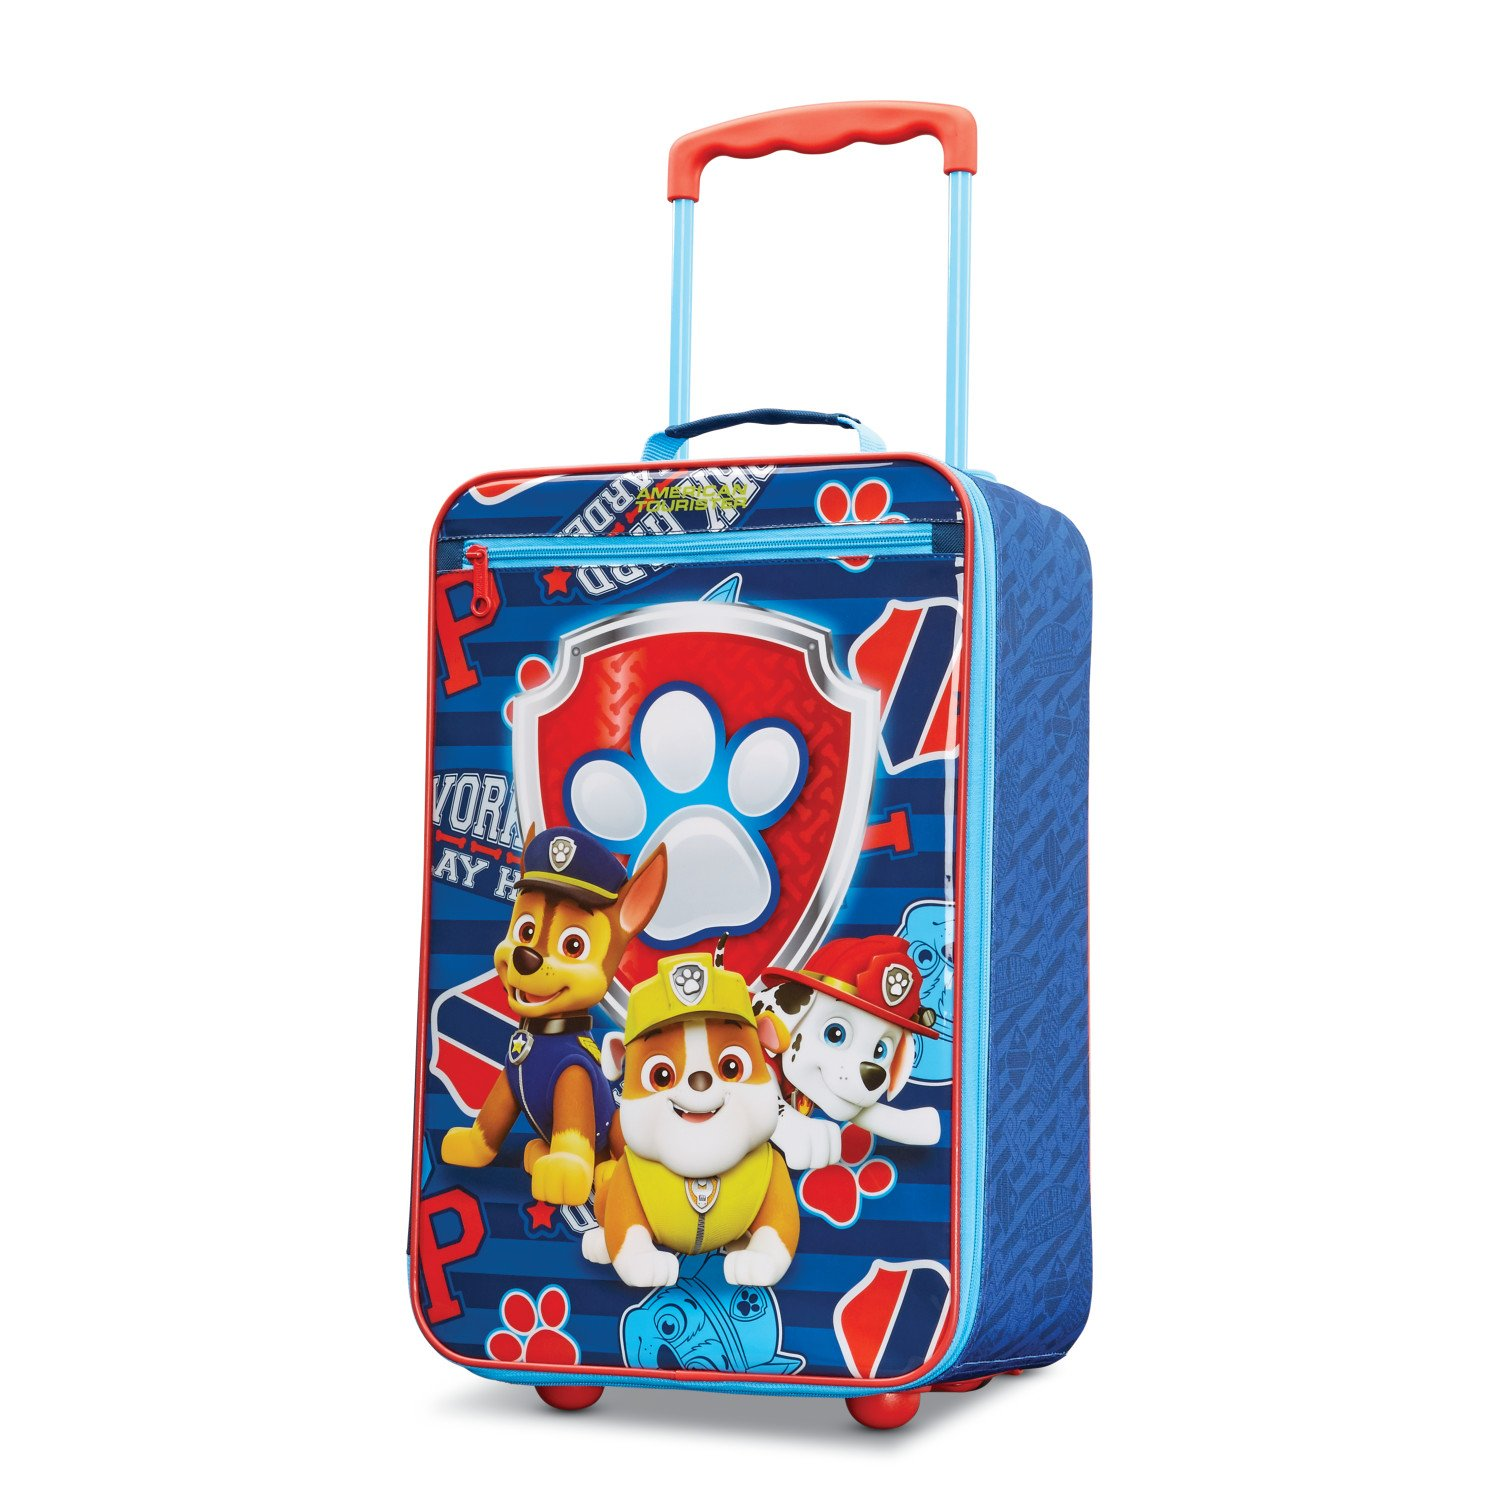 American Tourister Kids' Paw Patrol Softside Upright 18, Red/Blue American Tourister - Samsonite Corporation 110158-6604